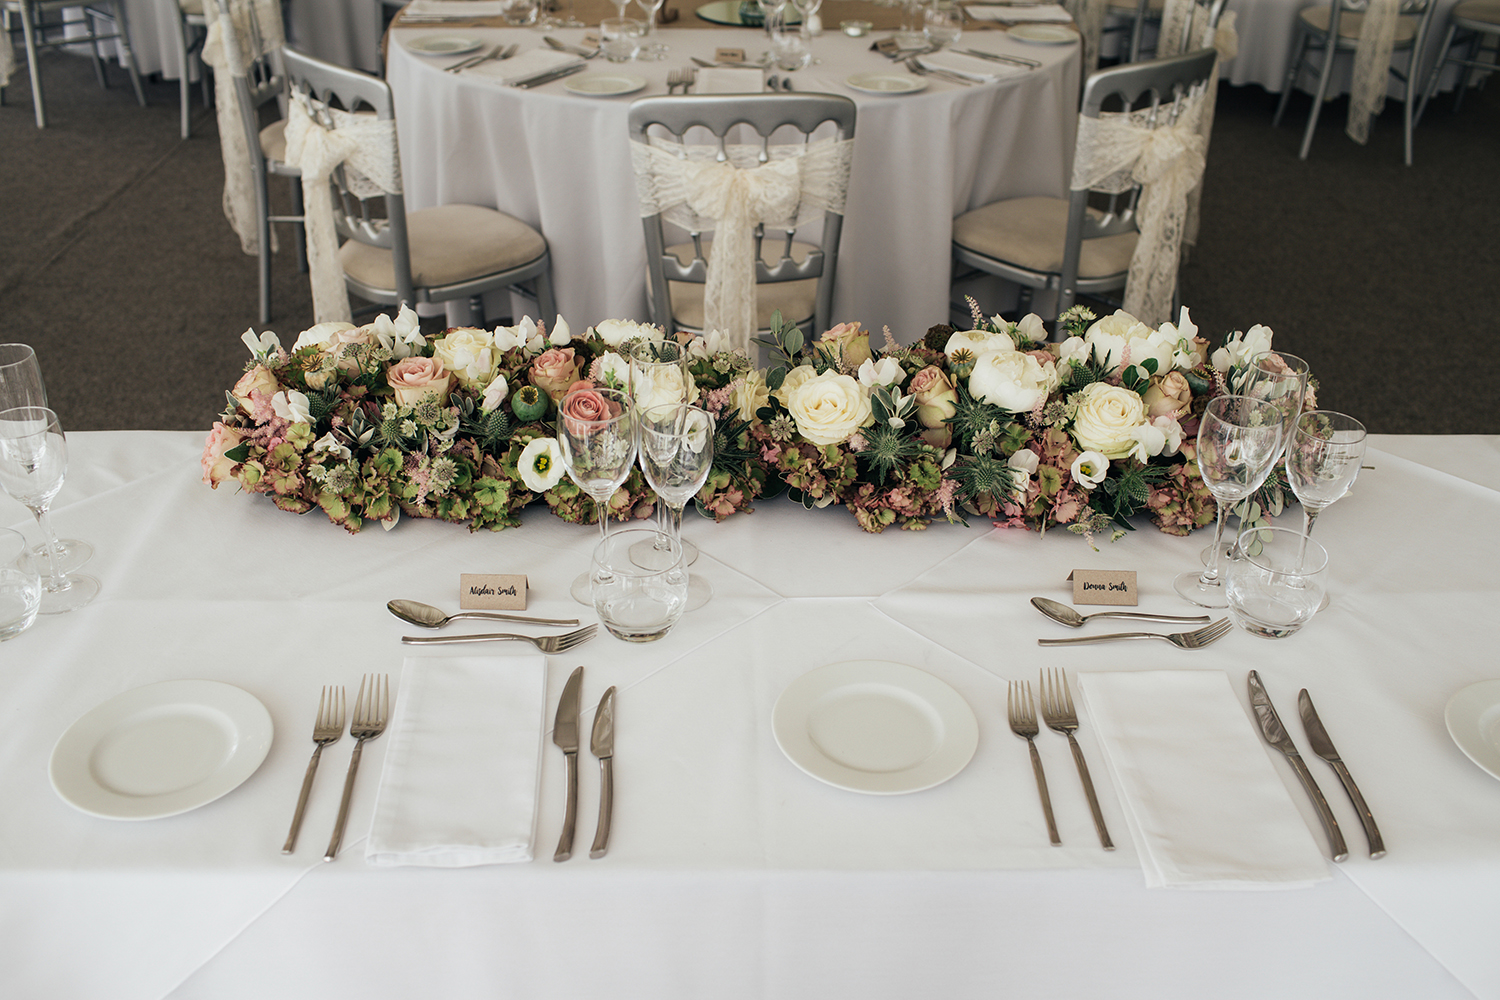 Top table place settings